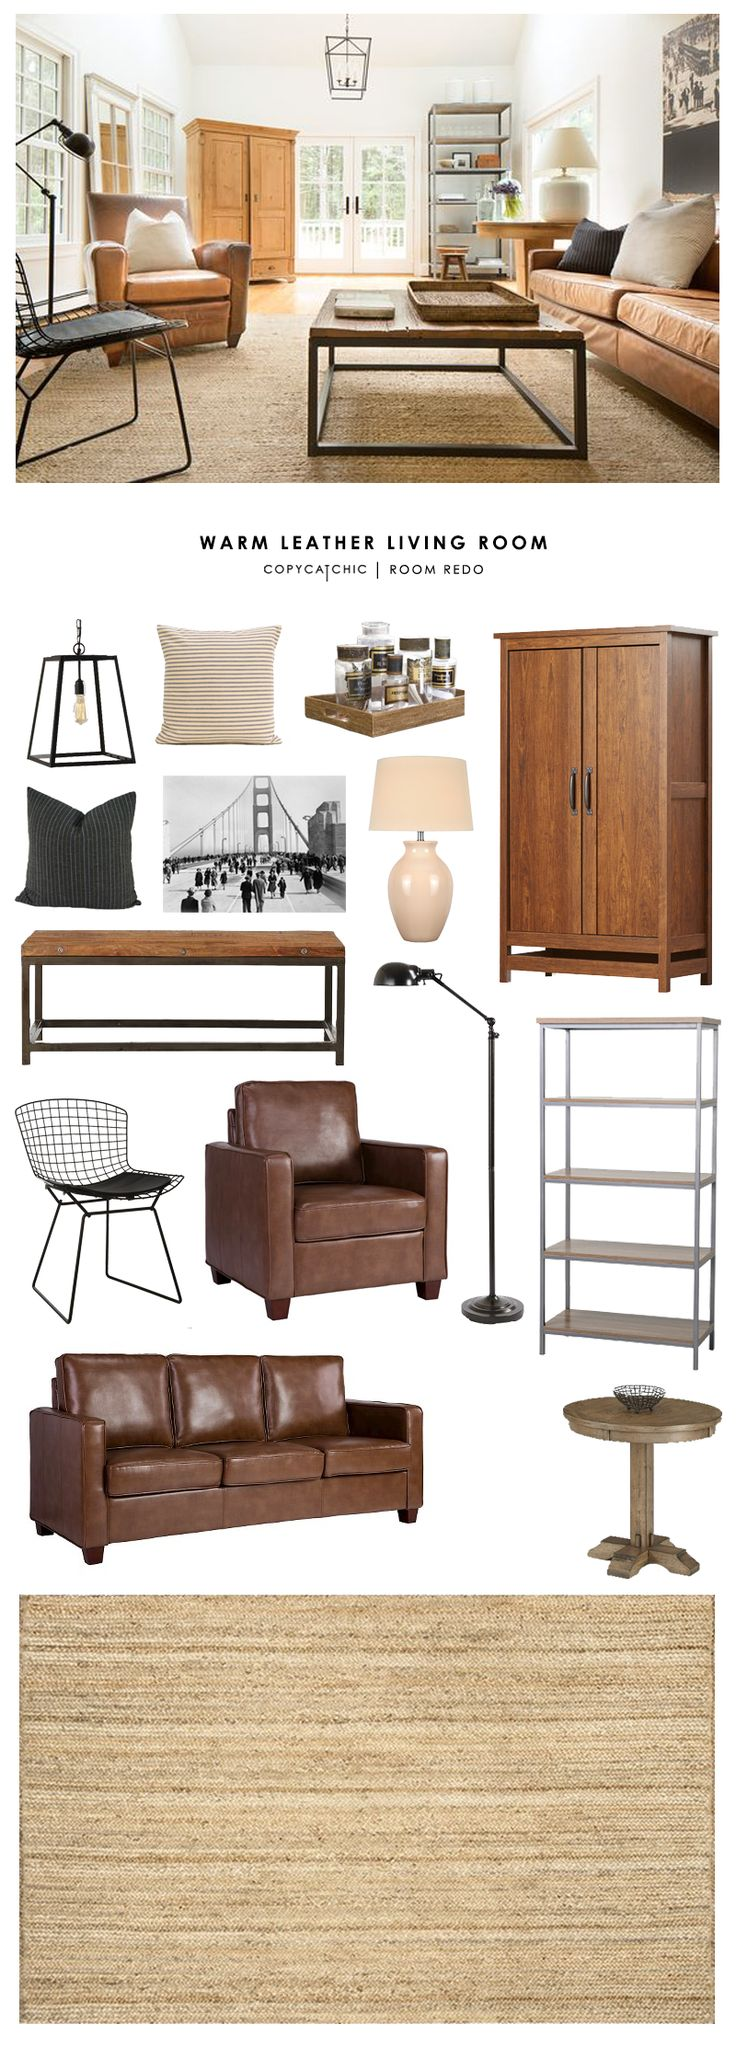 Copy cat chic room redo warm leather living room